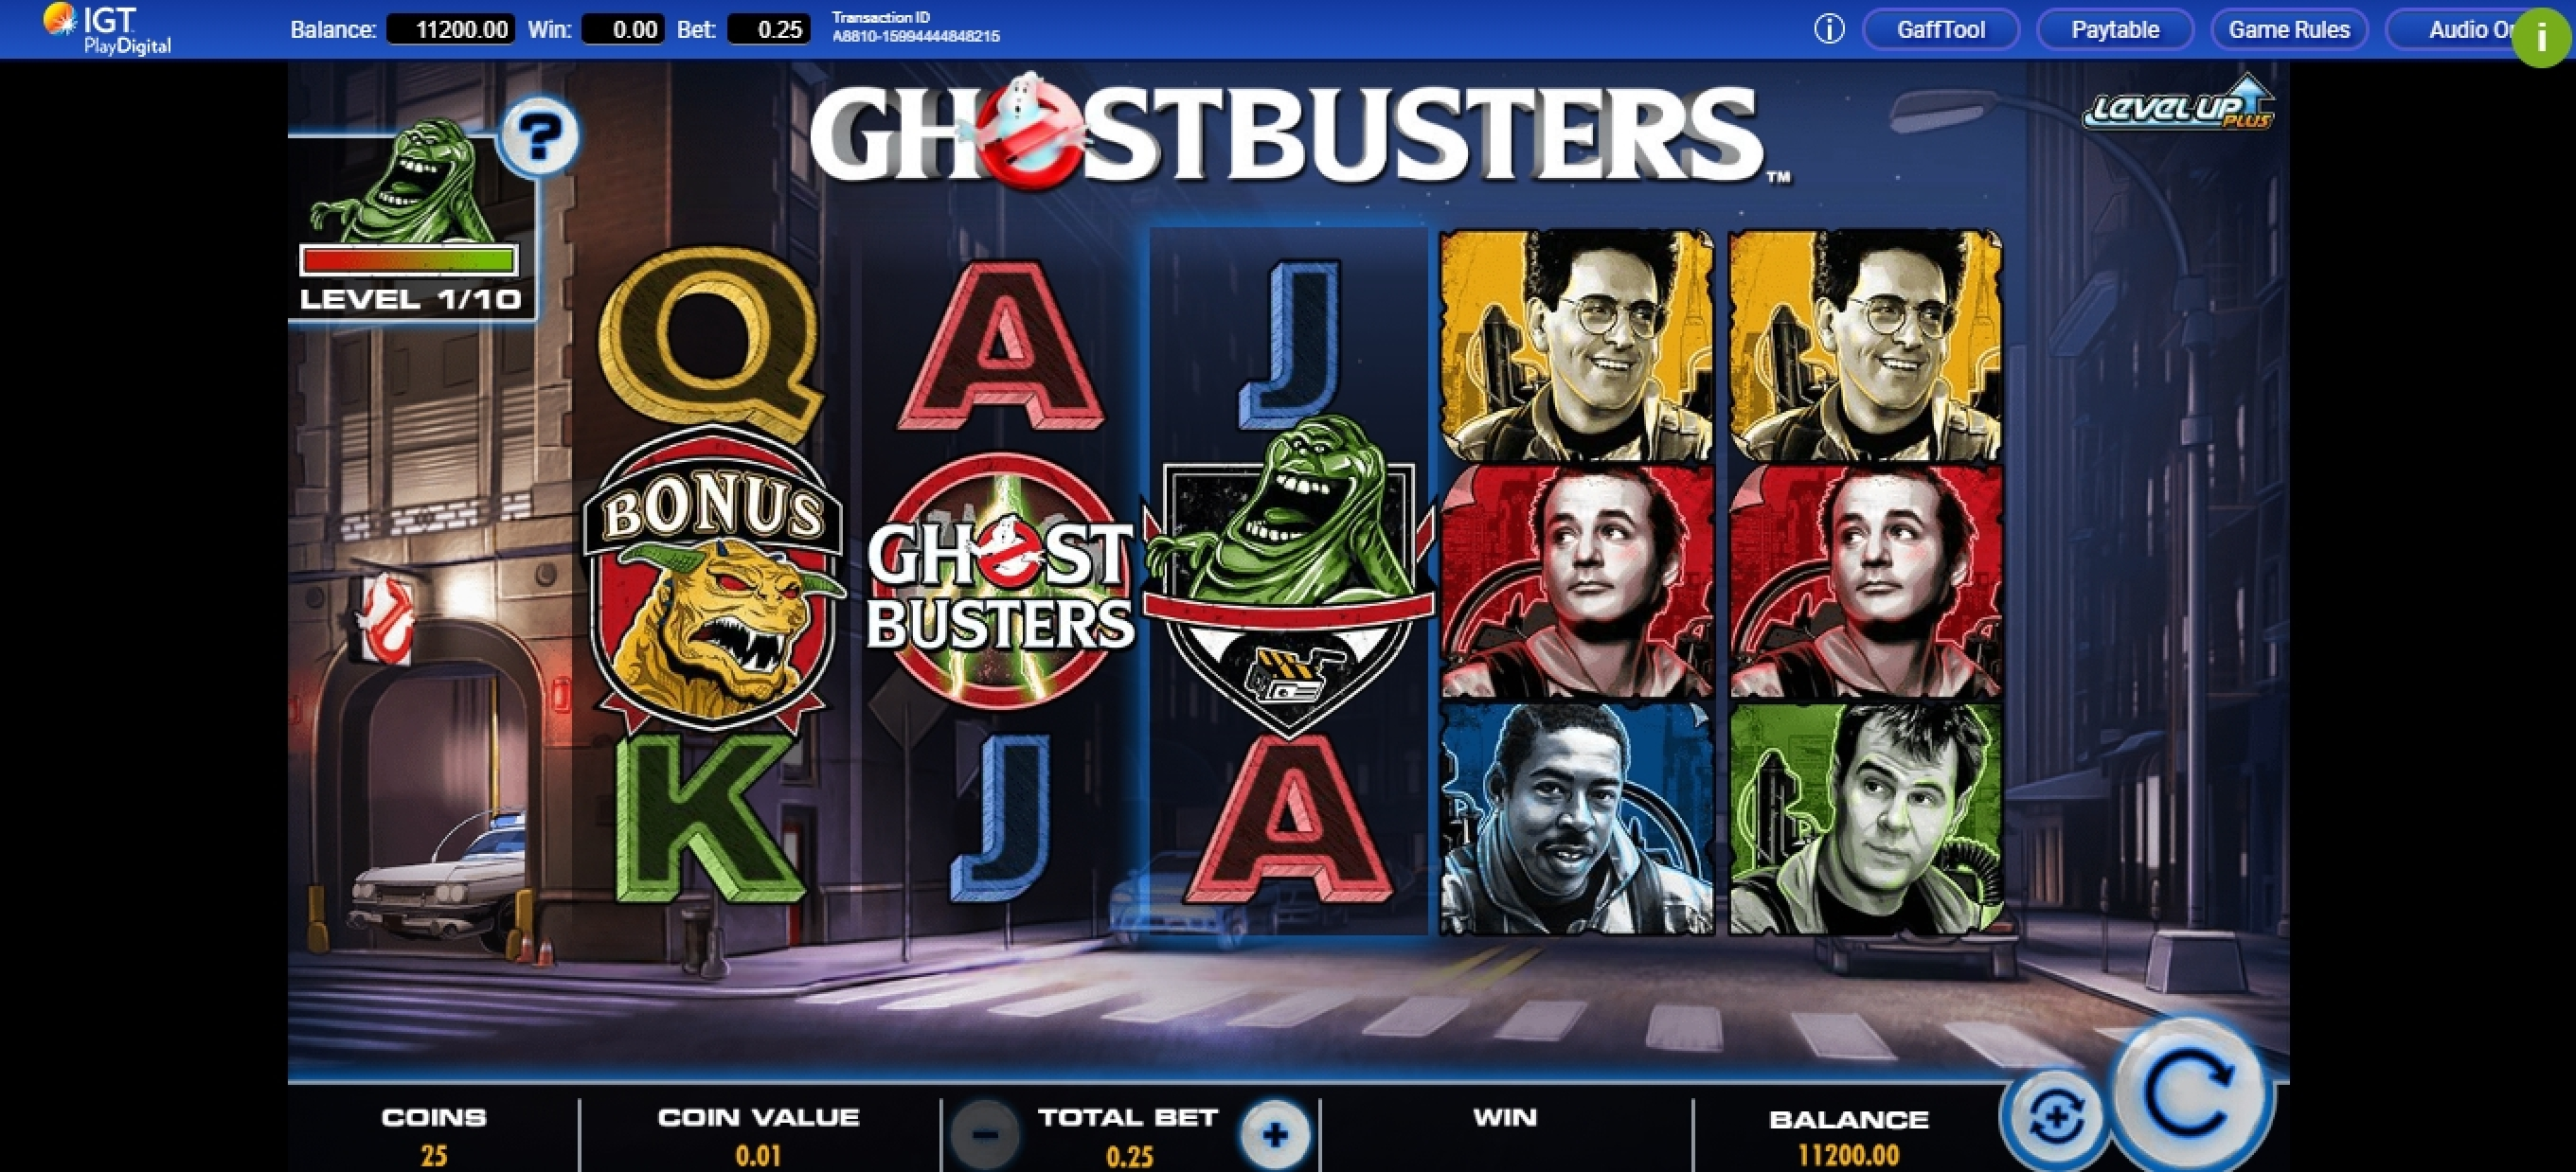 Reels in Ghostbusters Plus Slot Game by IGT